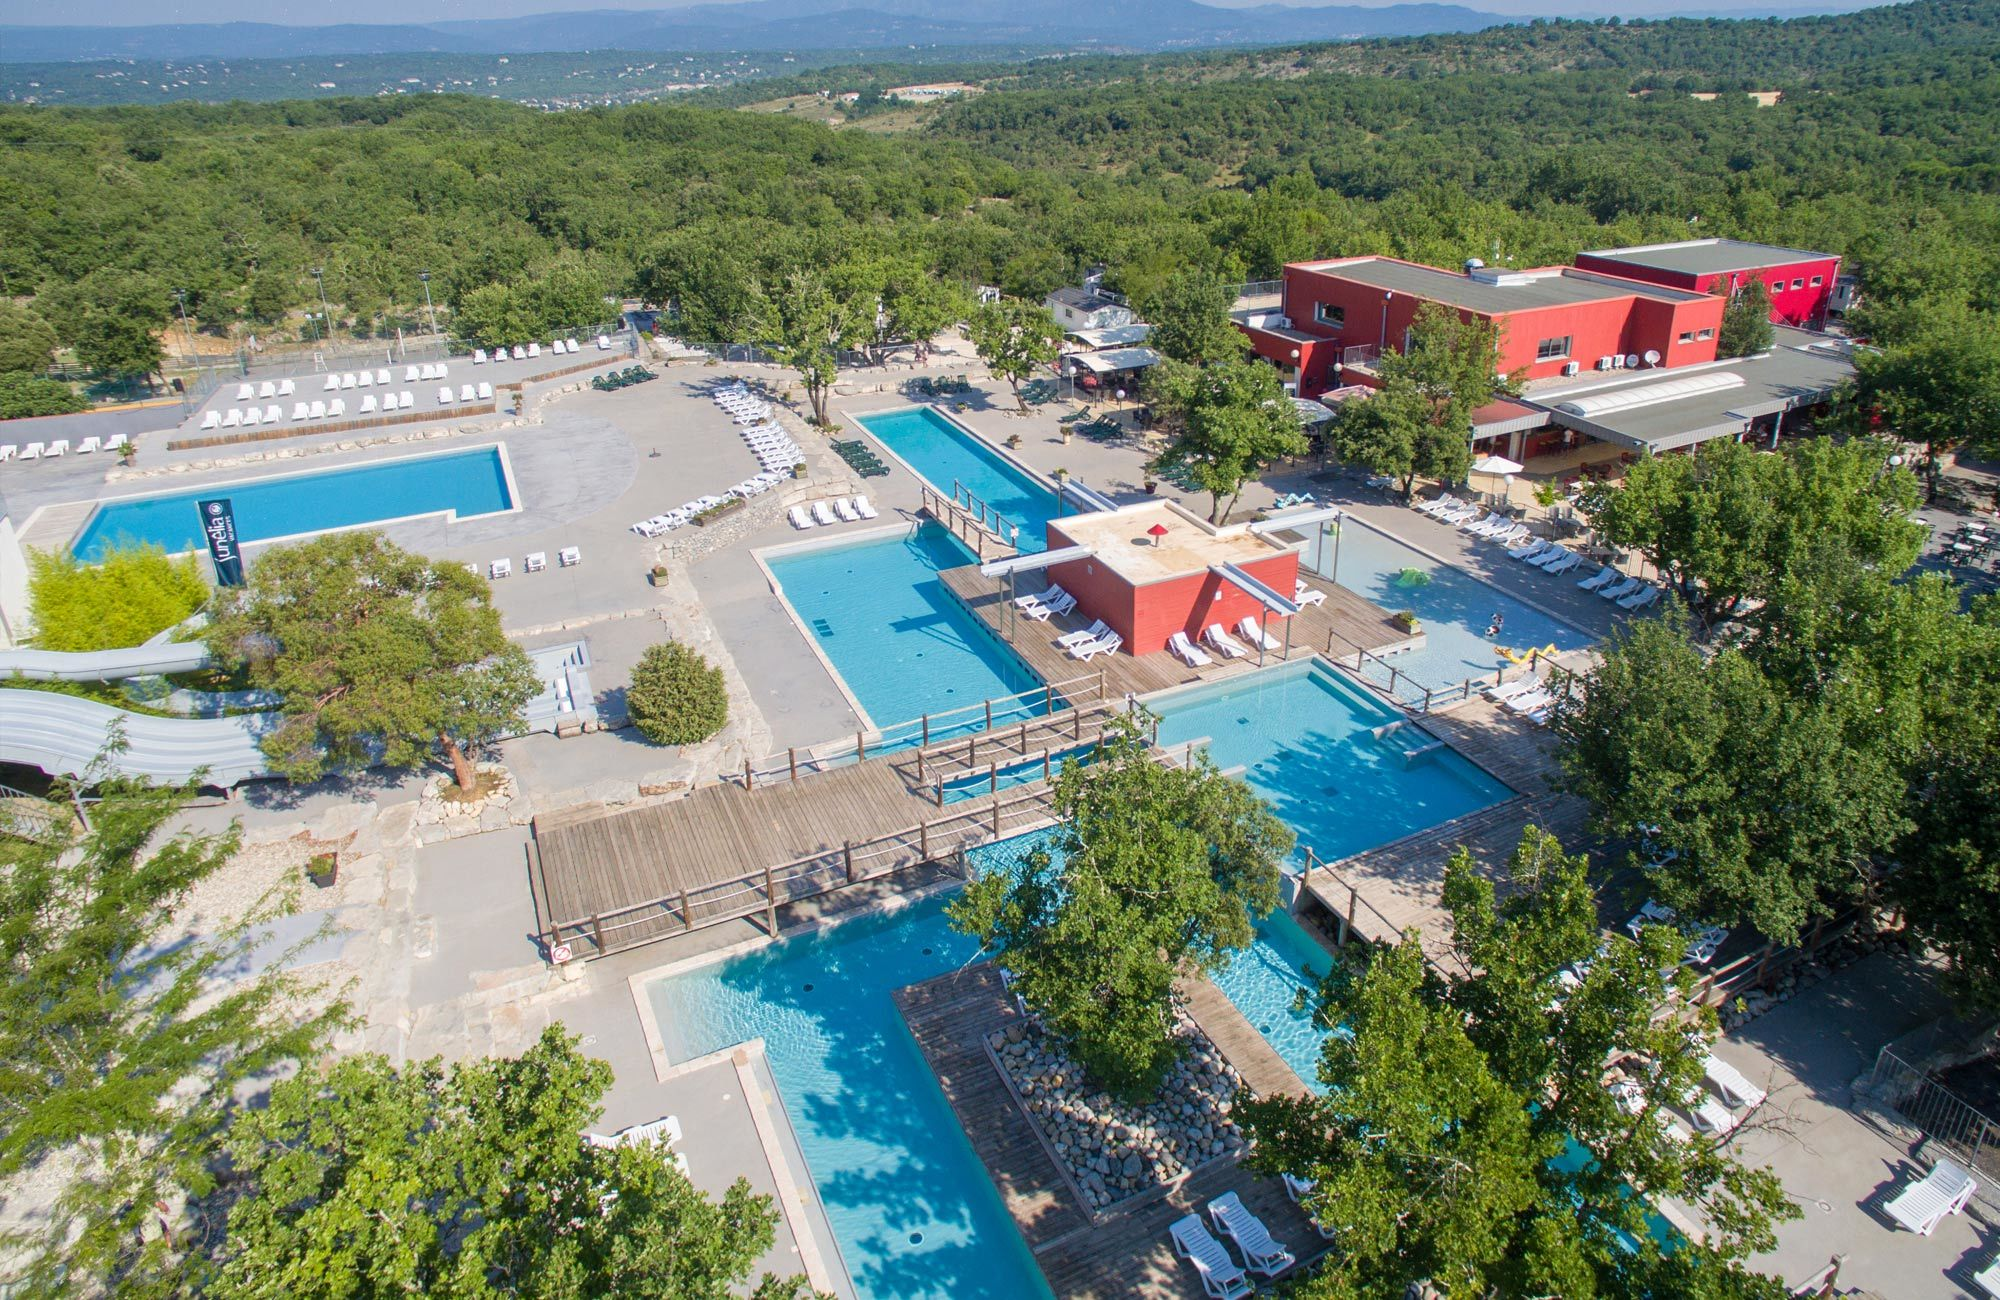 camping 5 etoiles ardeche camping ruoms ardeche sud With camping ardeche 2 etoiles avec piscine 8 location mobil home 4 6 personnes camping 3 berrias et